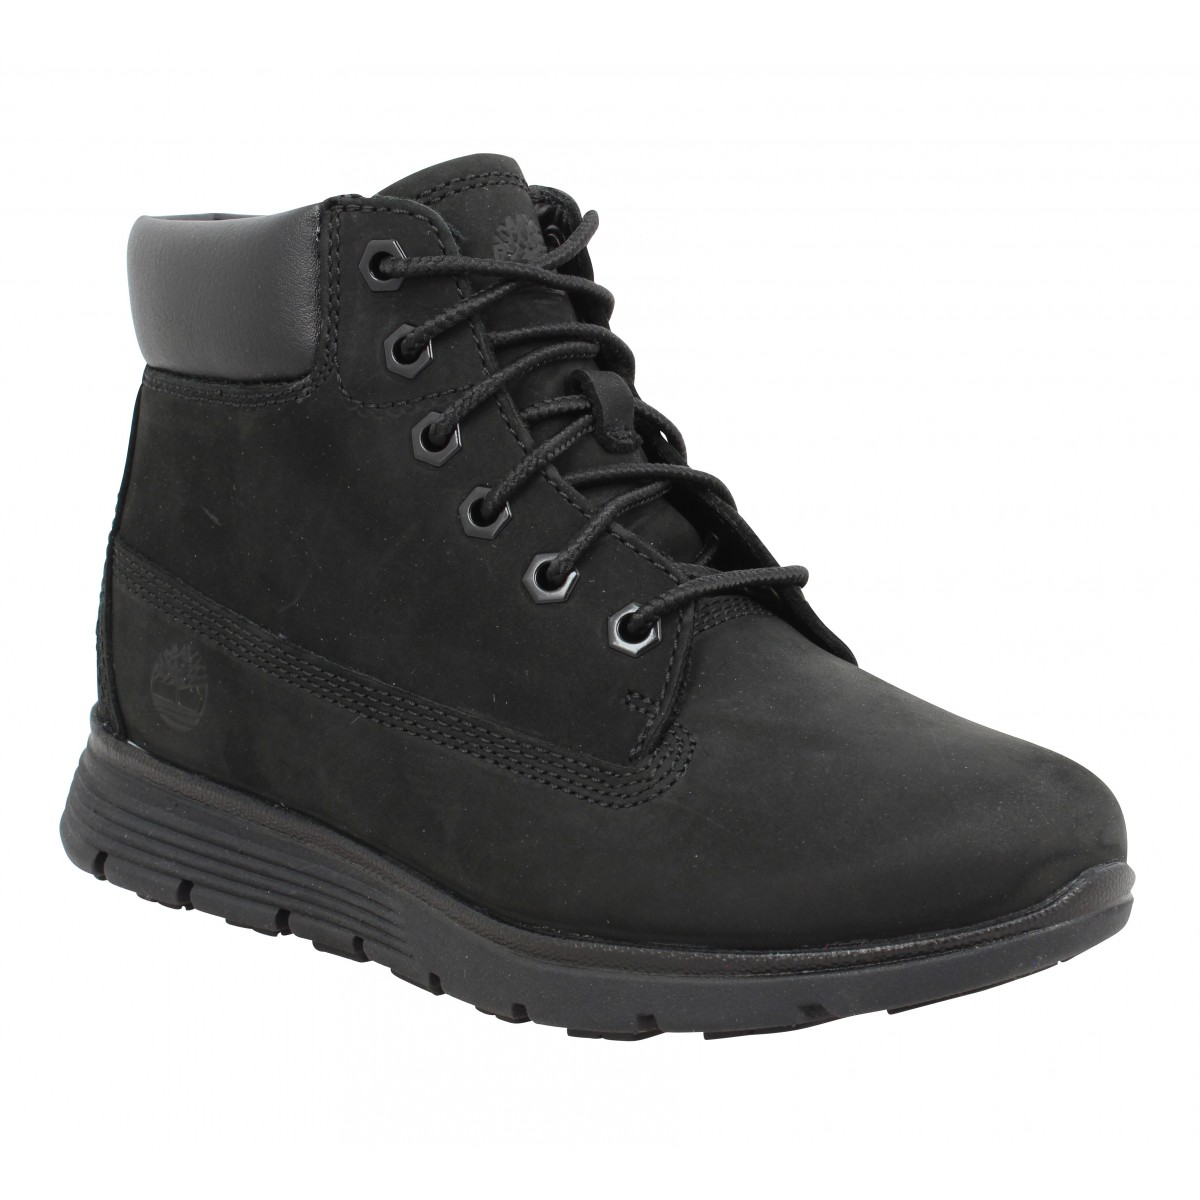 Baskets TIMBERLAND Killington 6in nubuck Enfant Noir